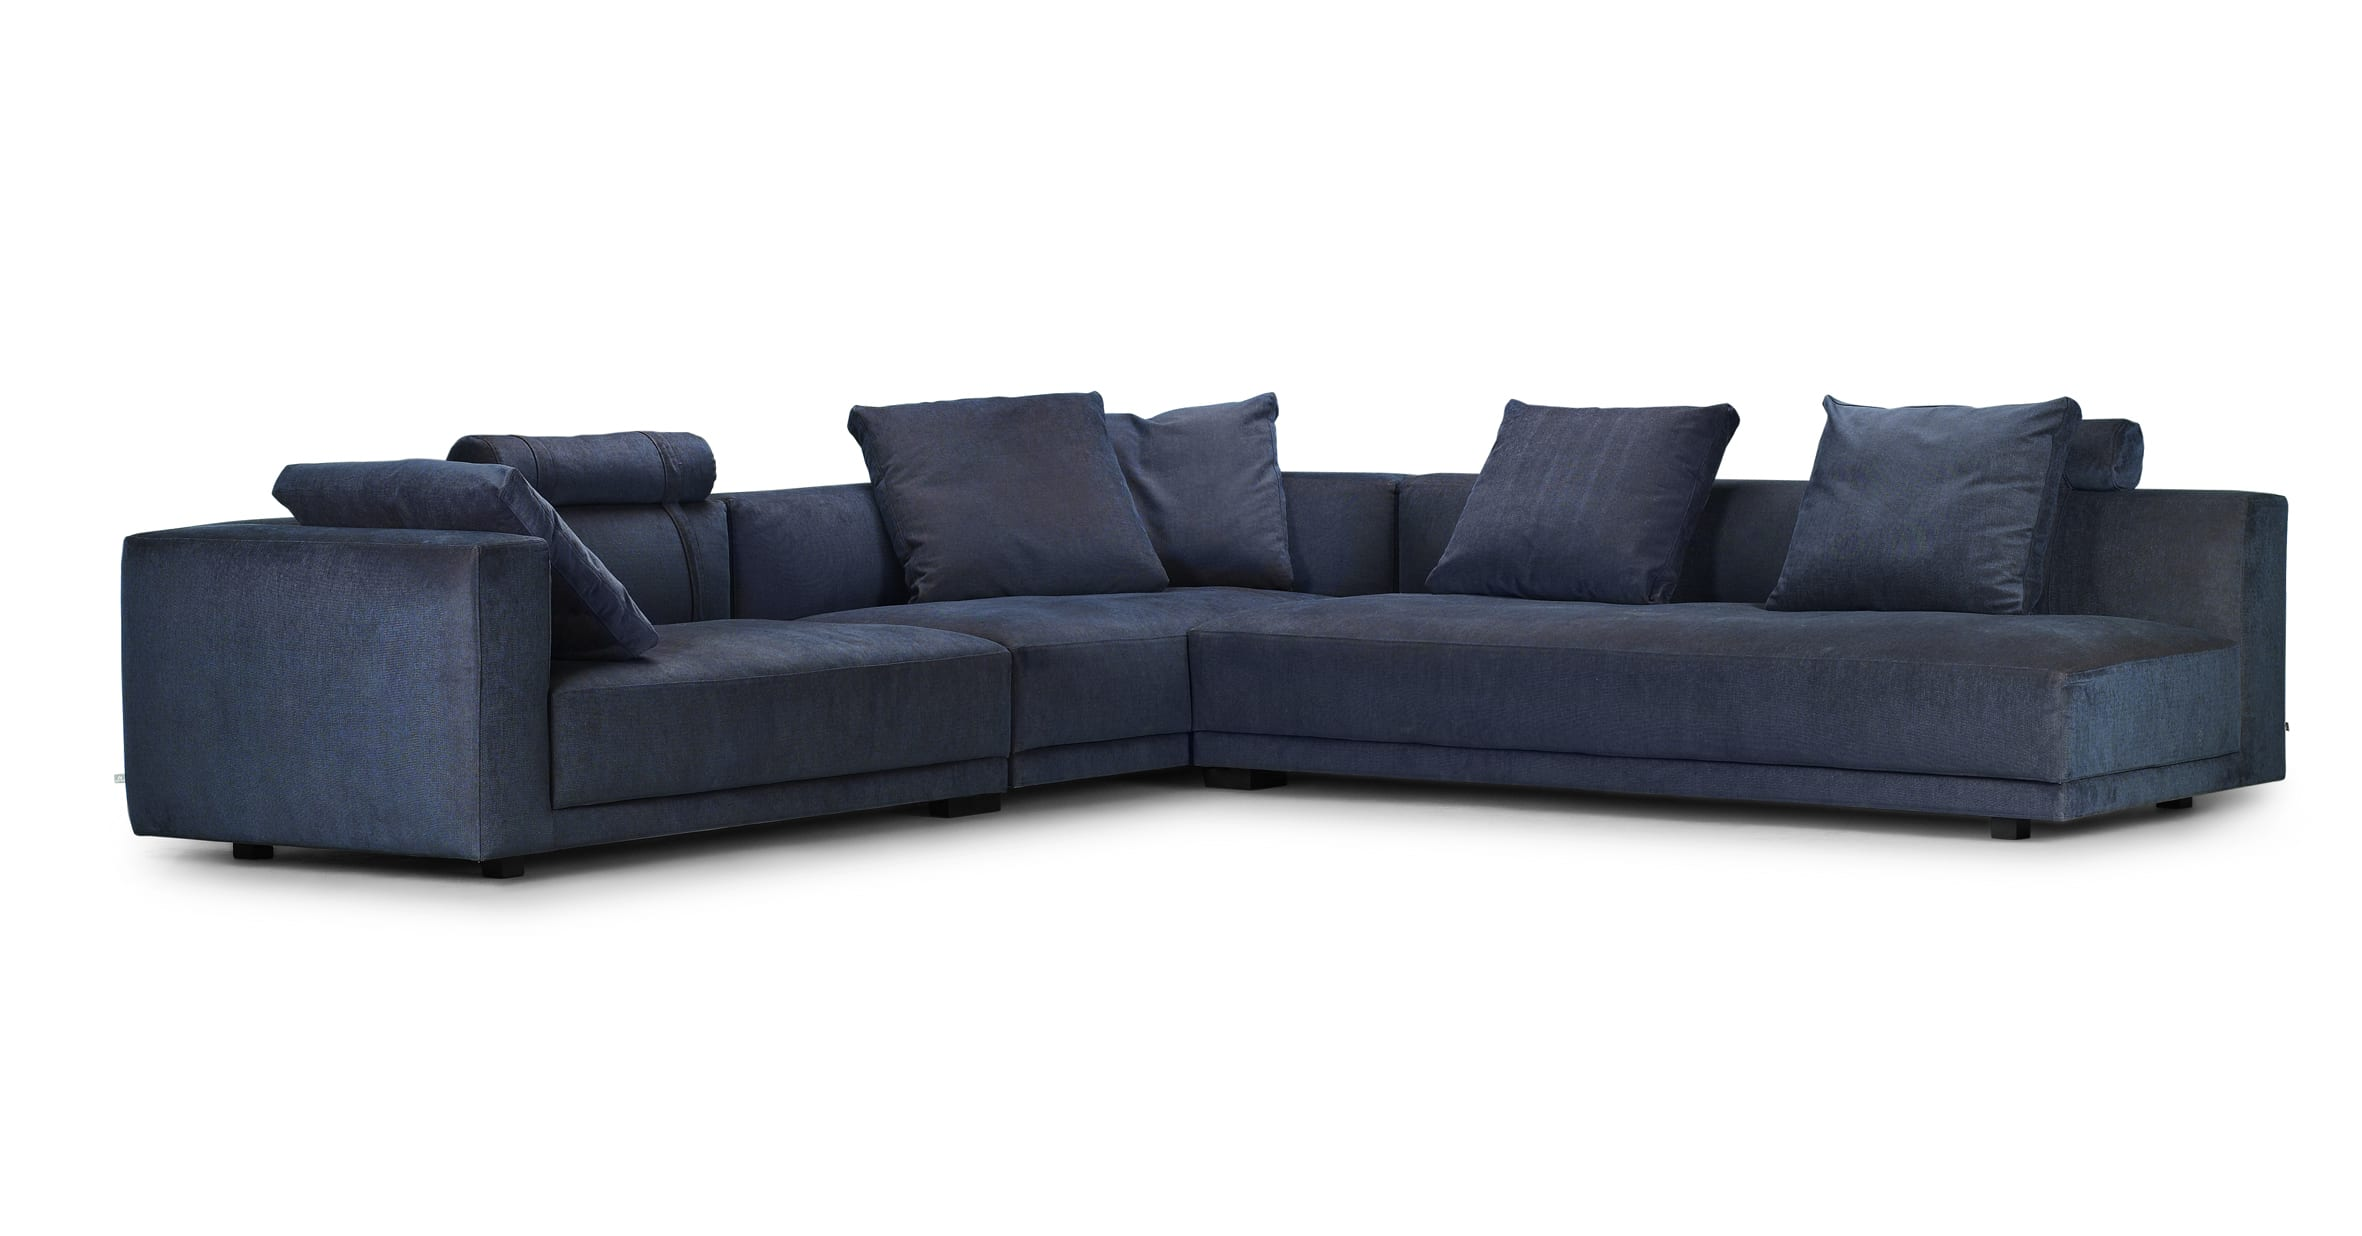 Rig sofa model Eilersen